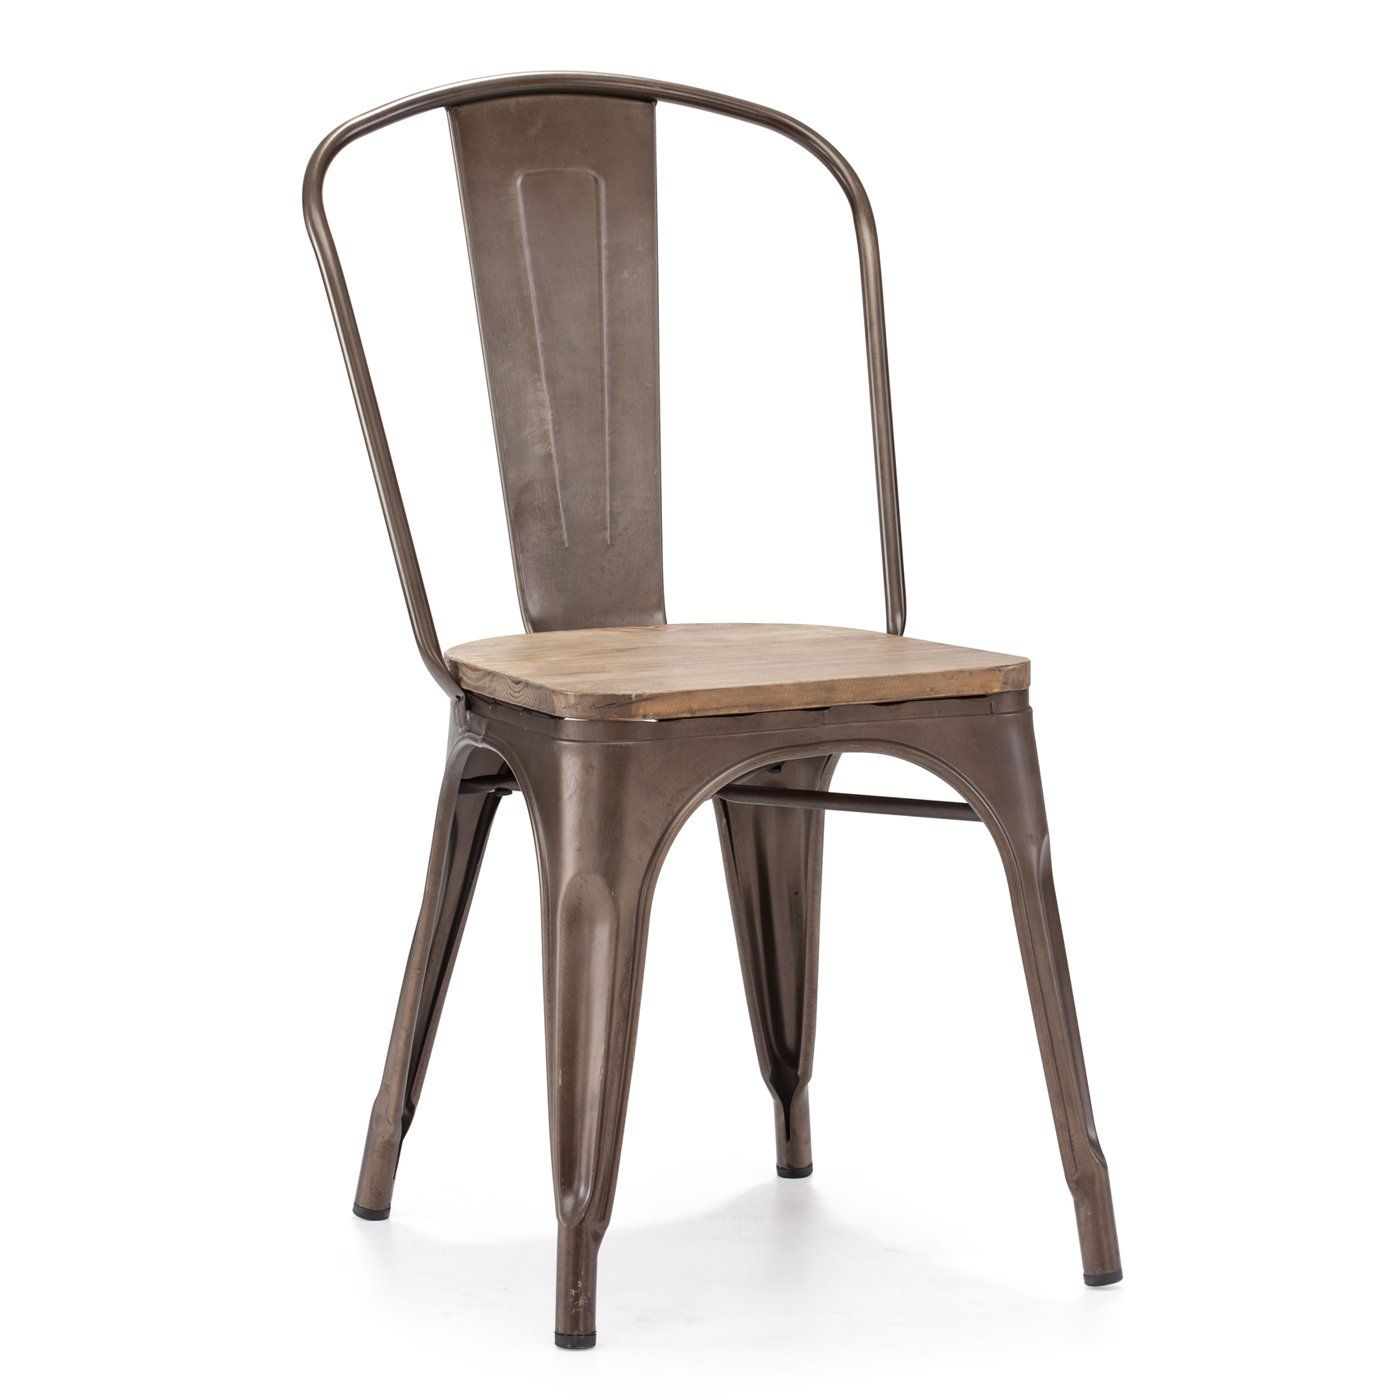 Zuo Modern Elio Wood Seat Dining Chair Set of 2